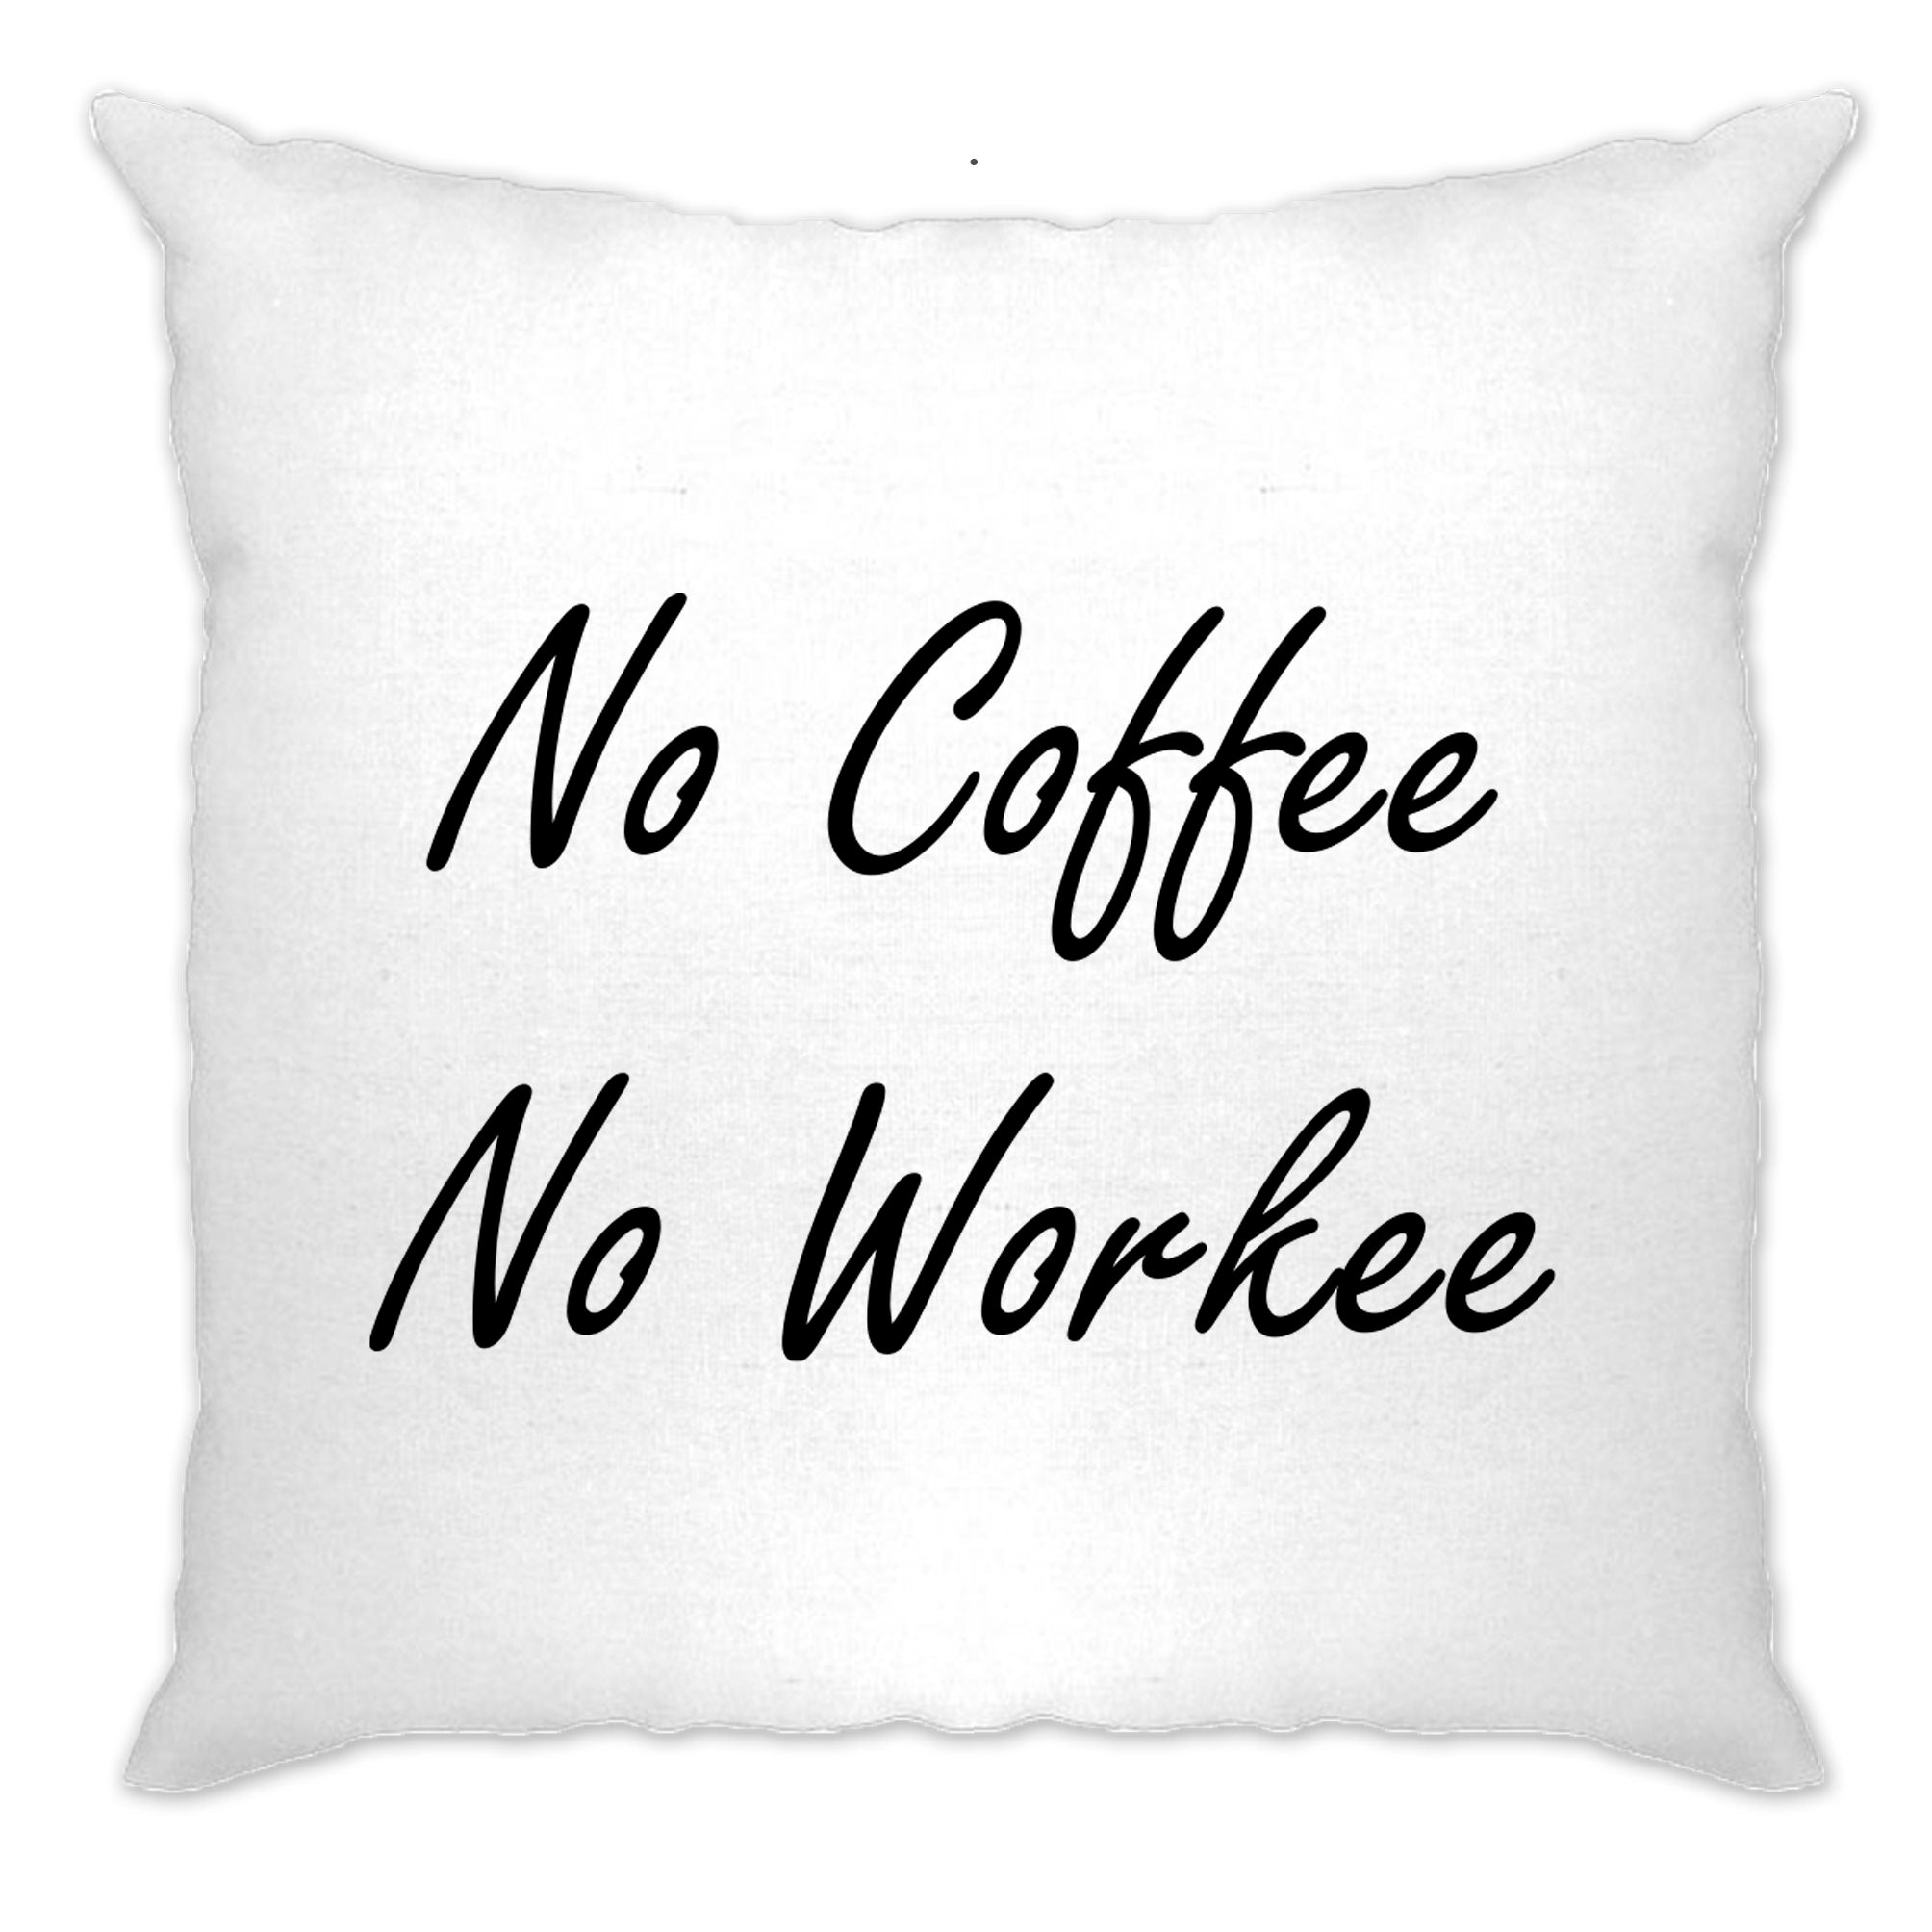 Novelty Morning Cushion Cover No Coffee, No Workee Slogan